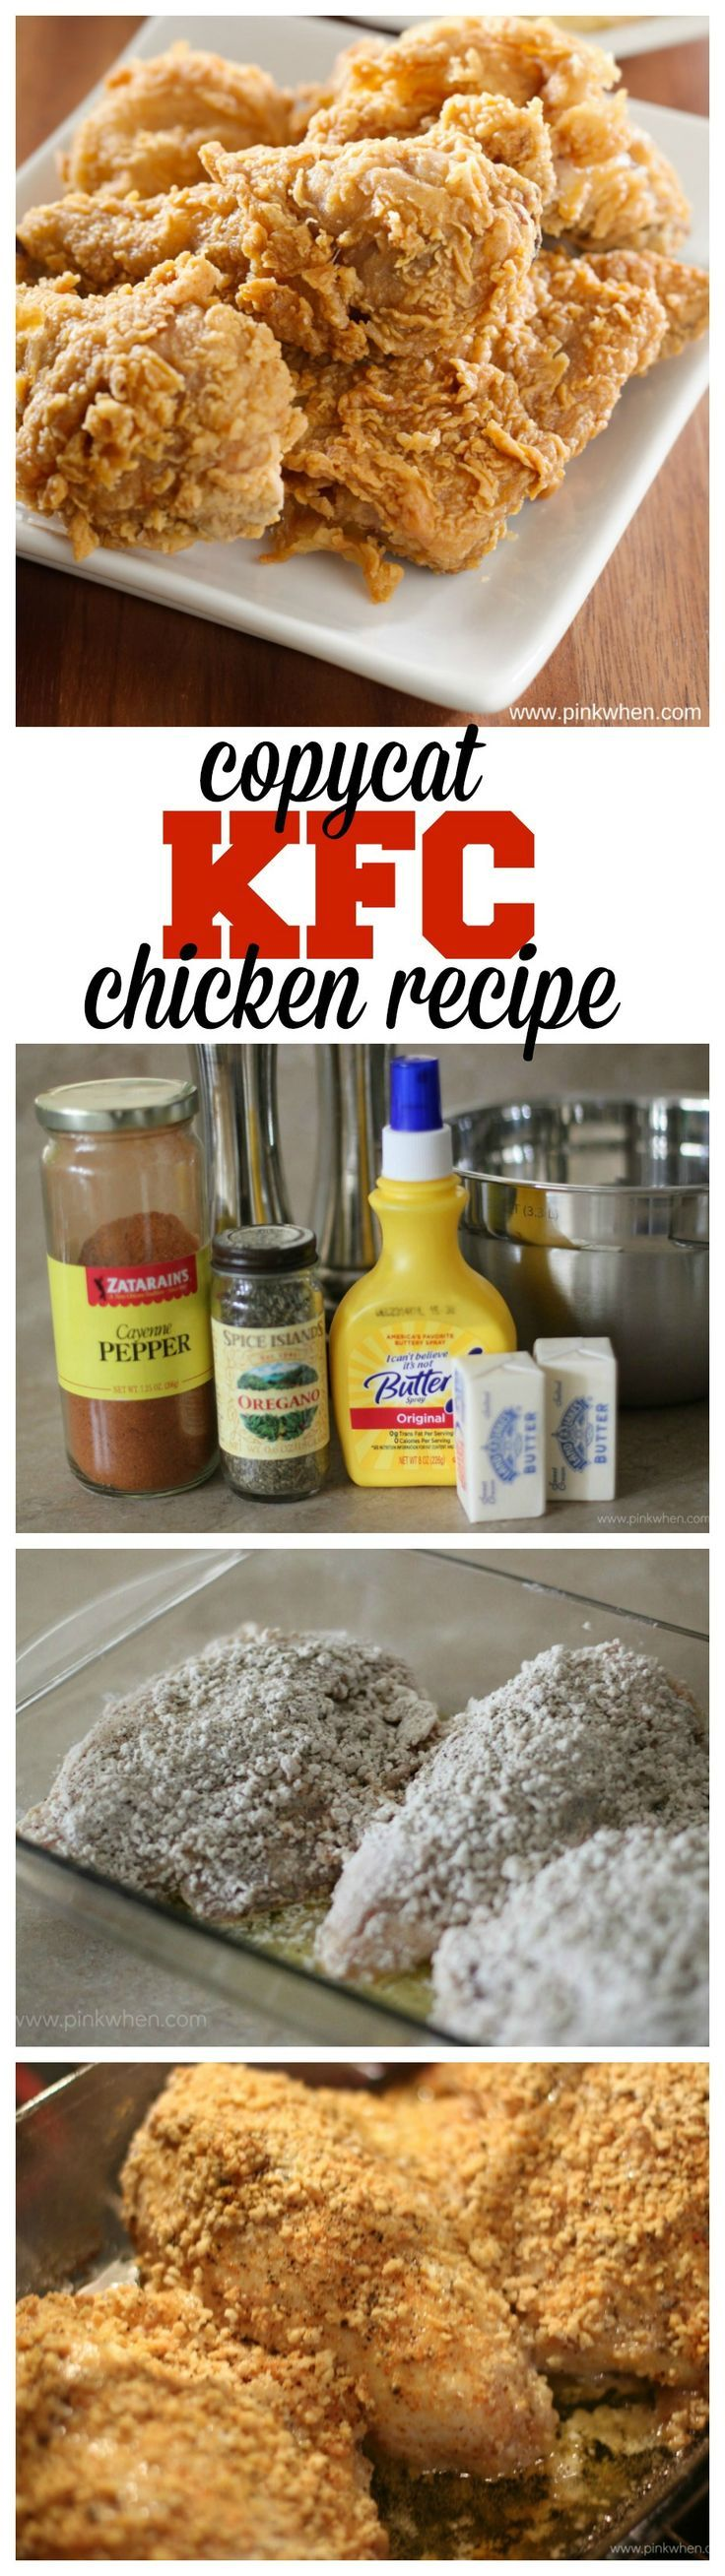 Make your own mouth watering copycat KFC chicken at home with this recipe.